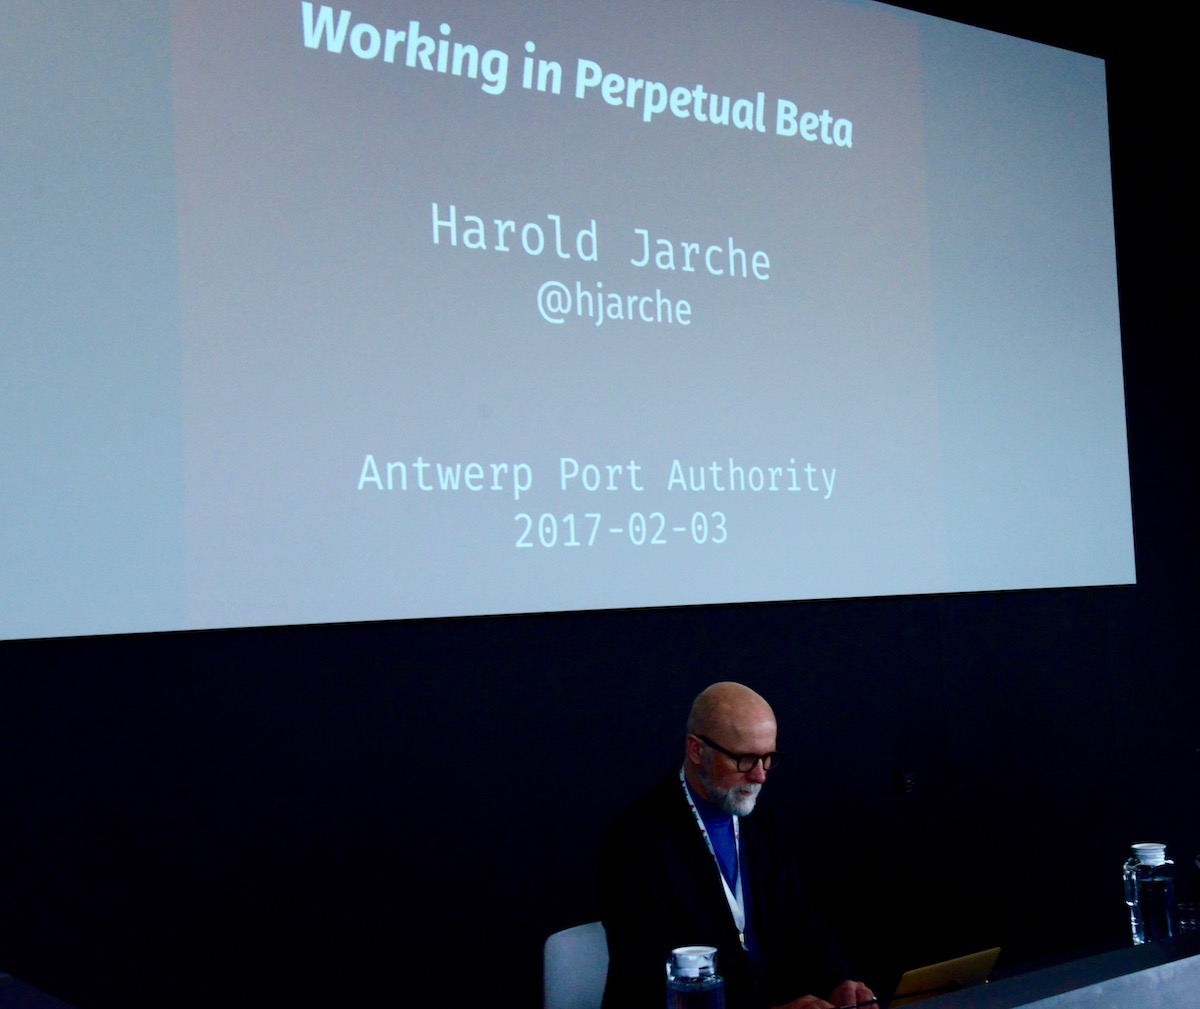 speaking at the antwerp port authority